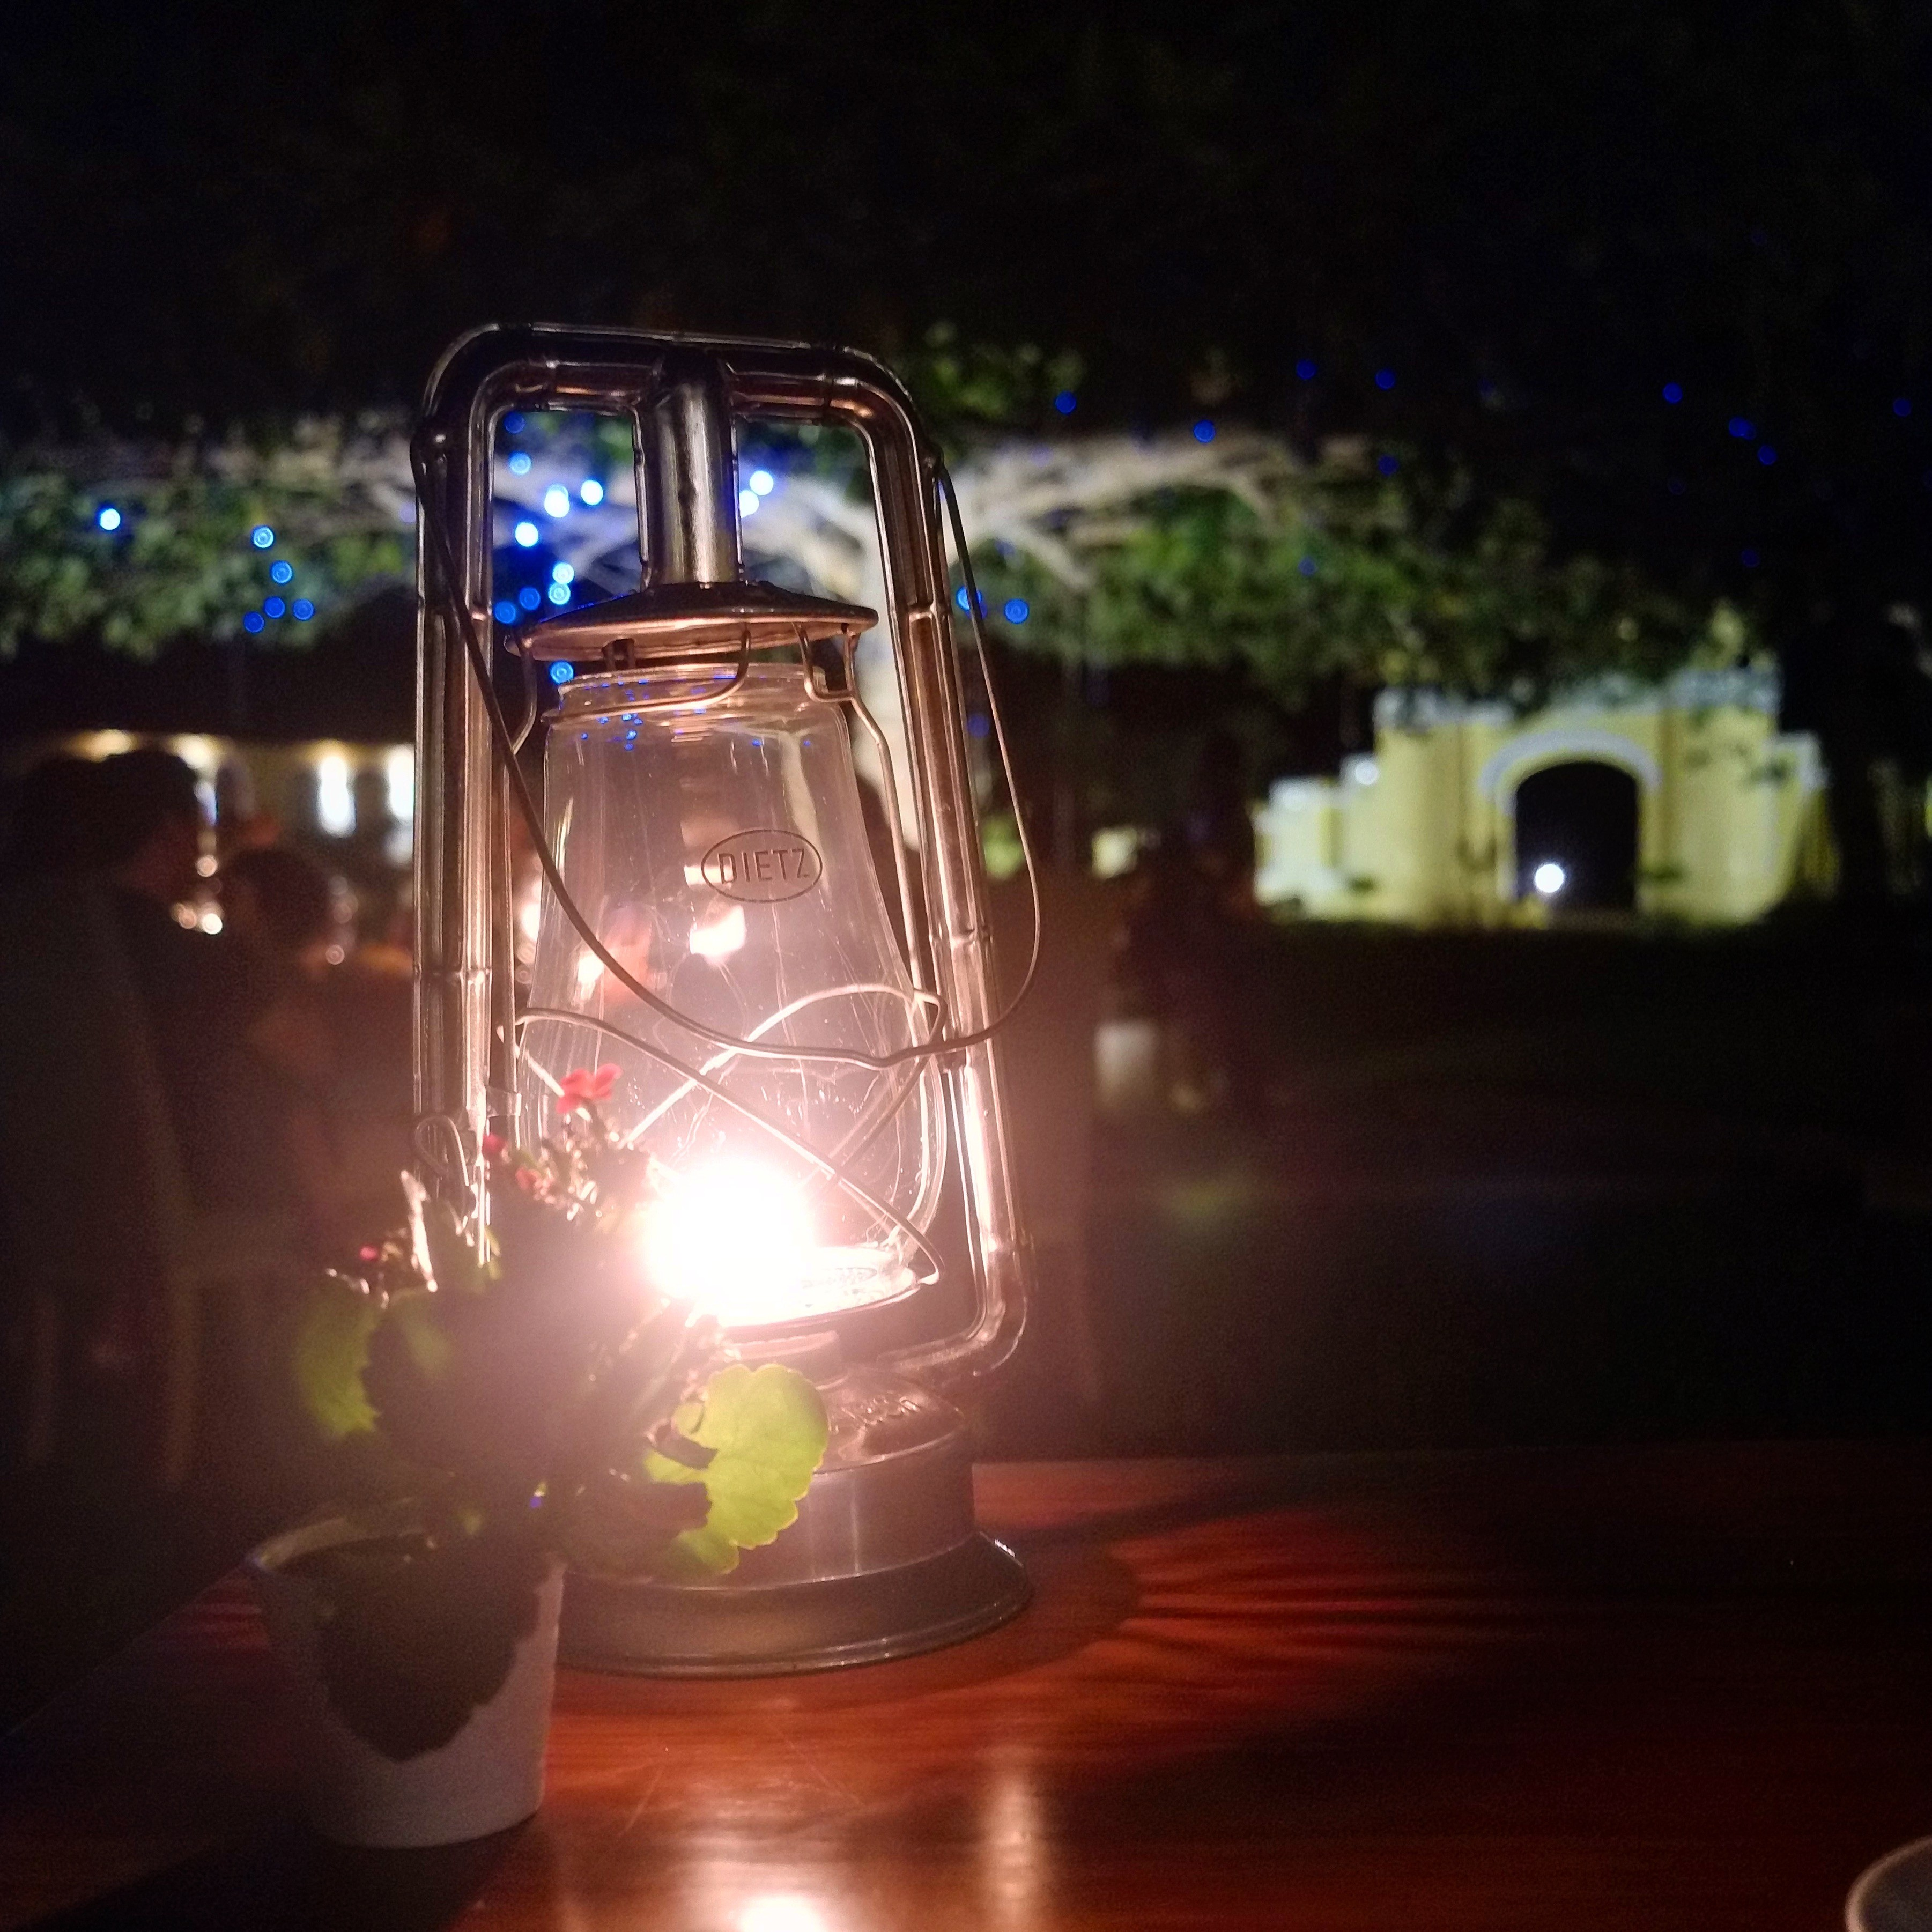 A close-up of a lantern on a table at night, with the entrance to the property out of focus in the background.